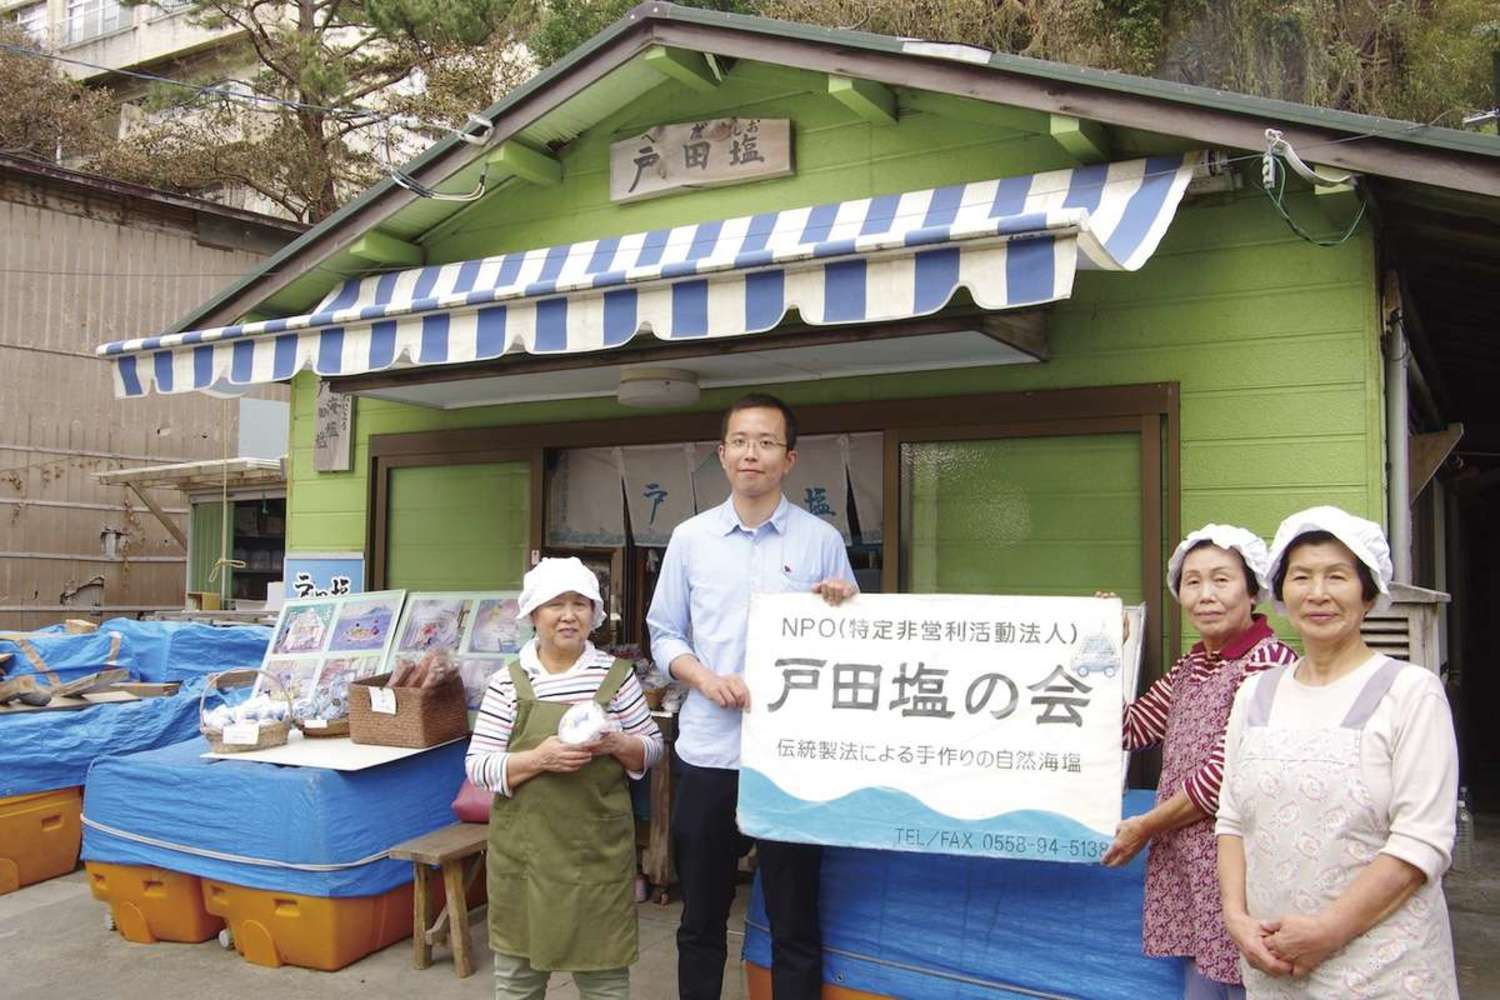 [sightseeing in Shizuoka report of foreigner] We make salt from seawater! We experience the making of traditional salt